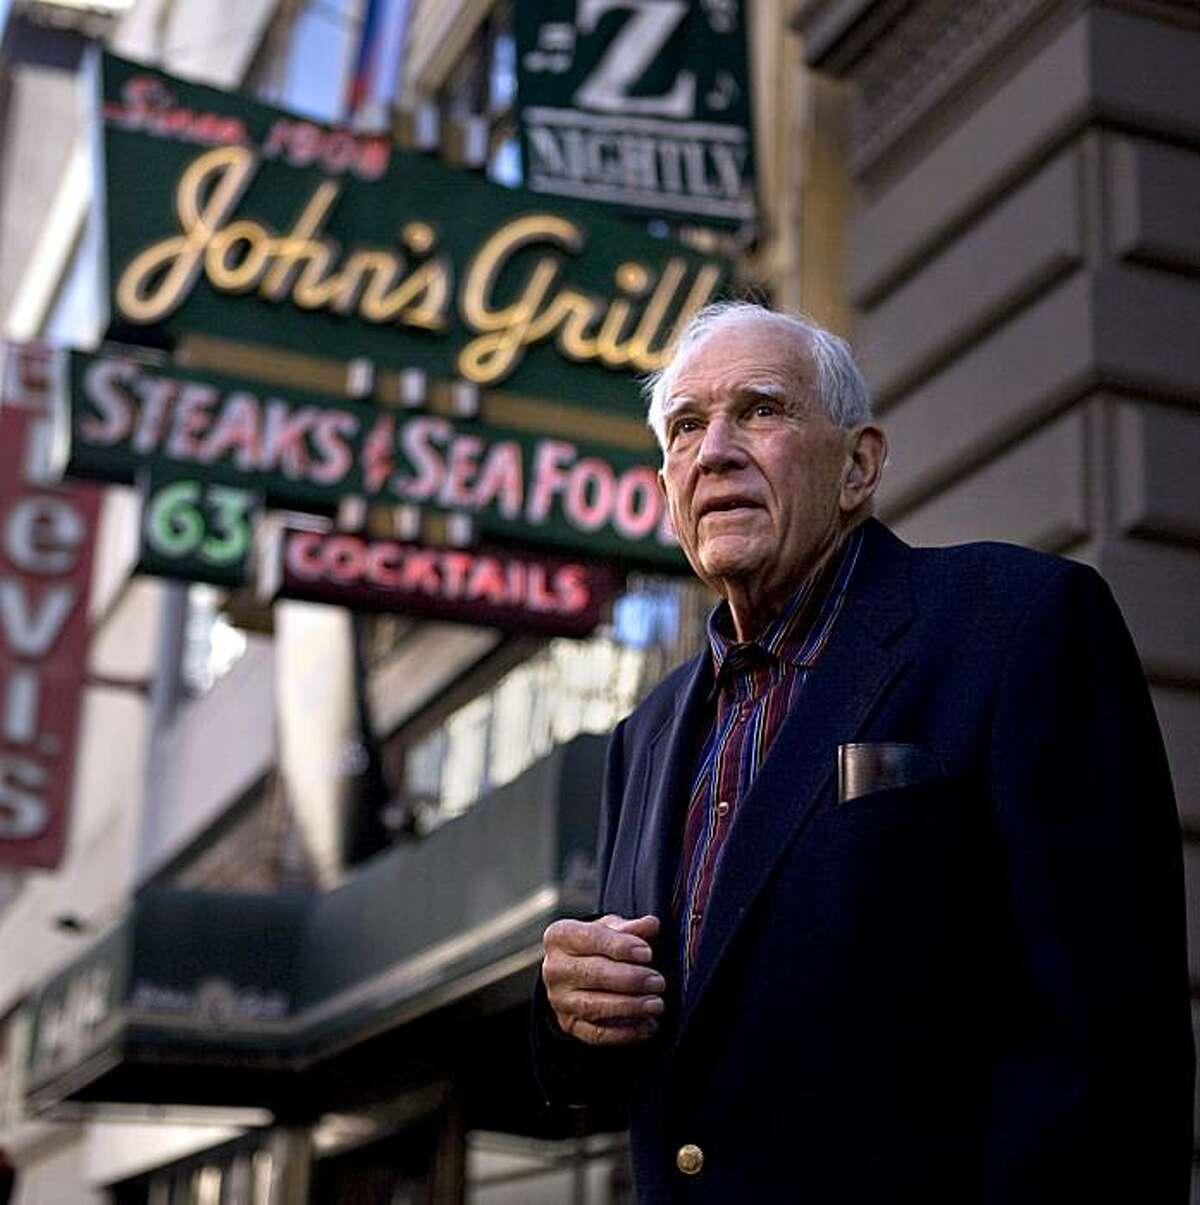 Writer Joe Gores stands outside John's Grill in San Francisco. Gores is a former detective and veteran crime-fiction writer. His newest novel,